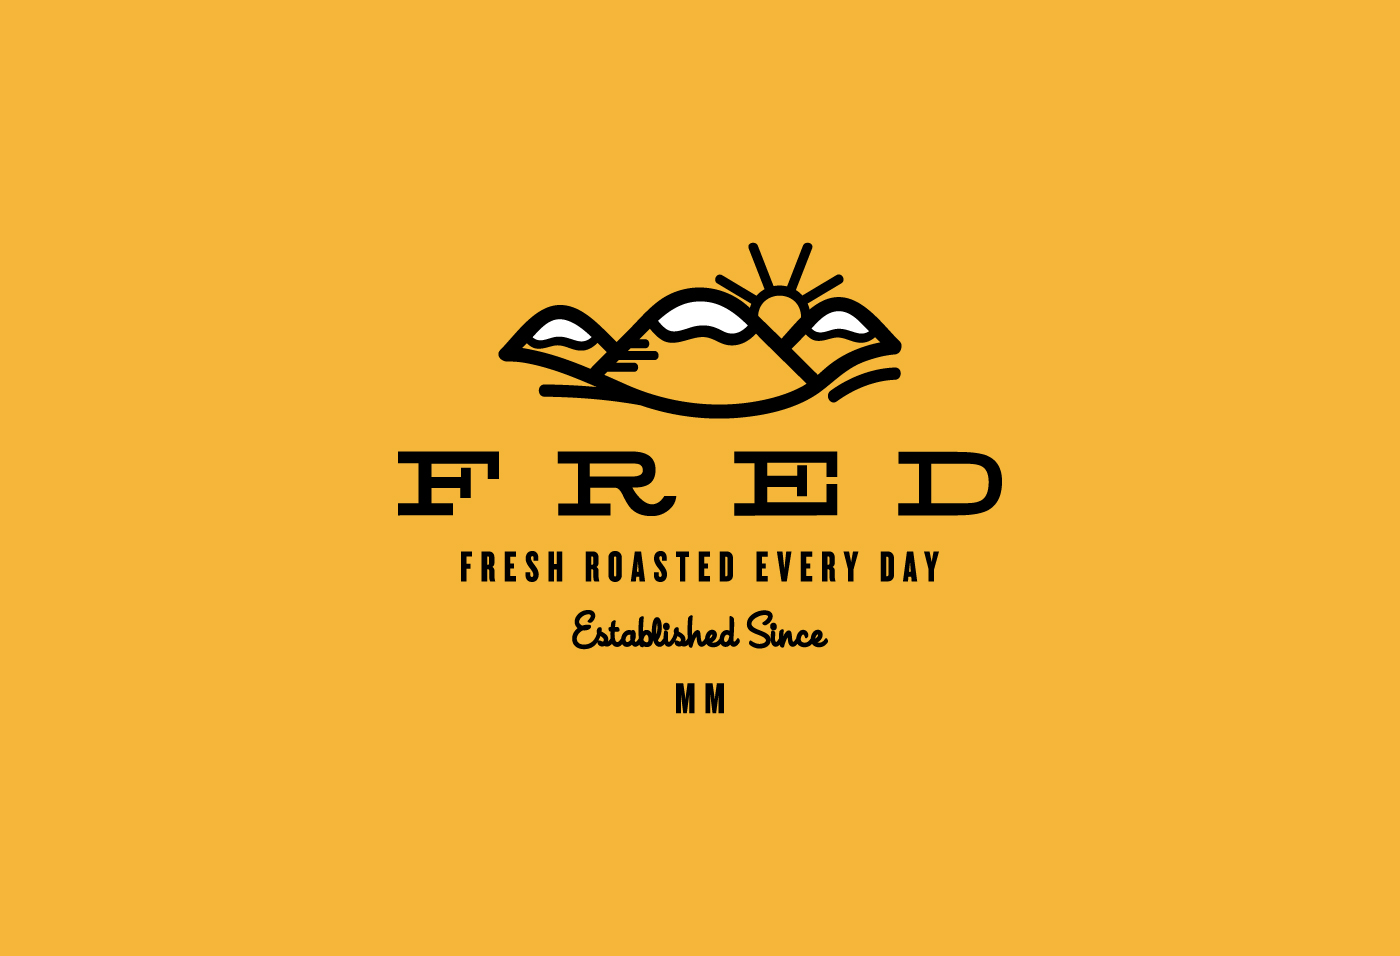 fred pastel city design